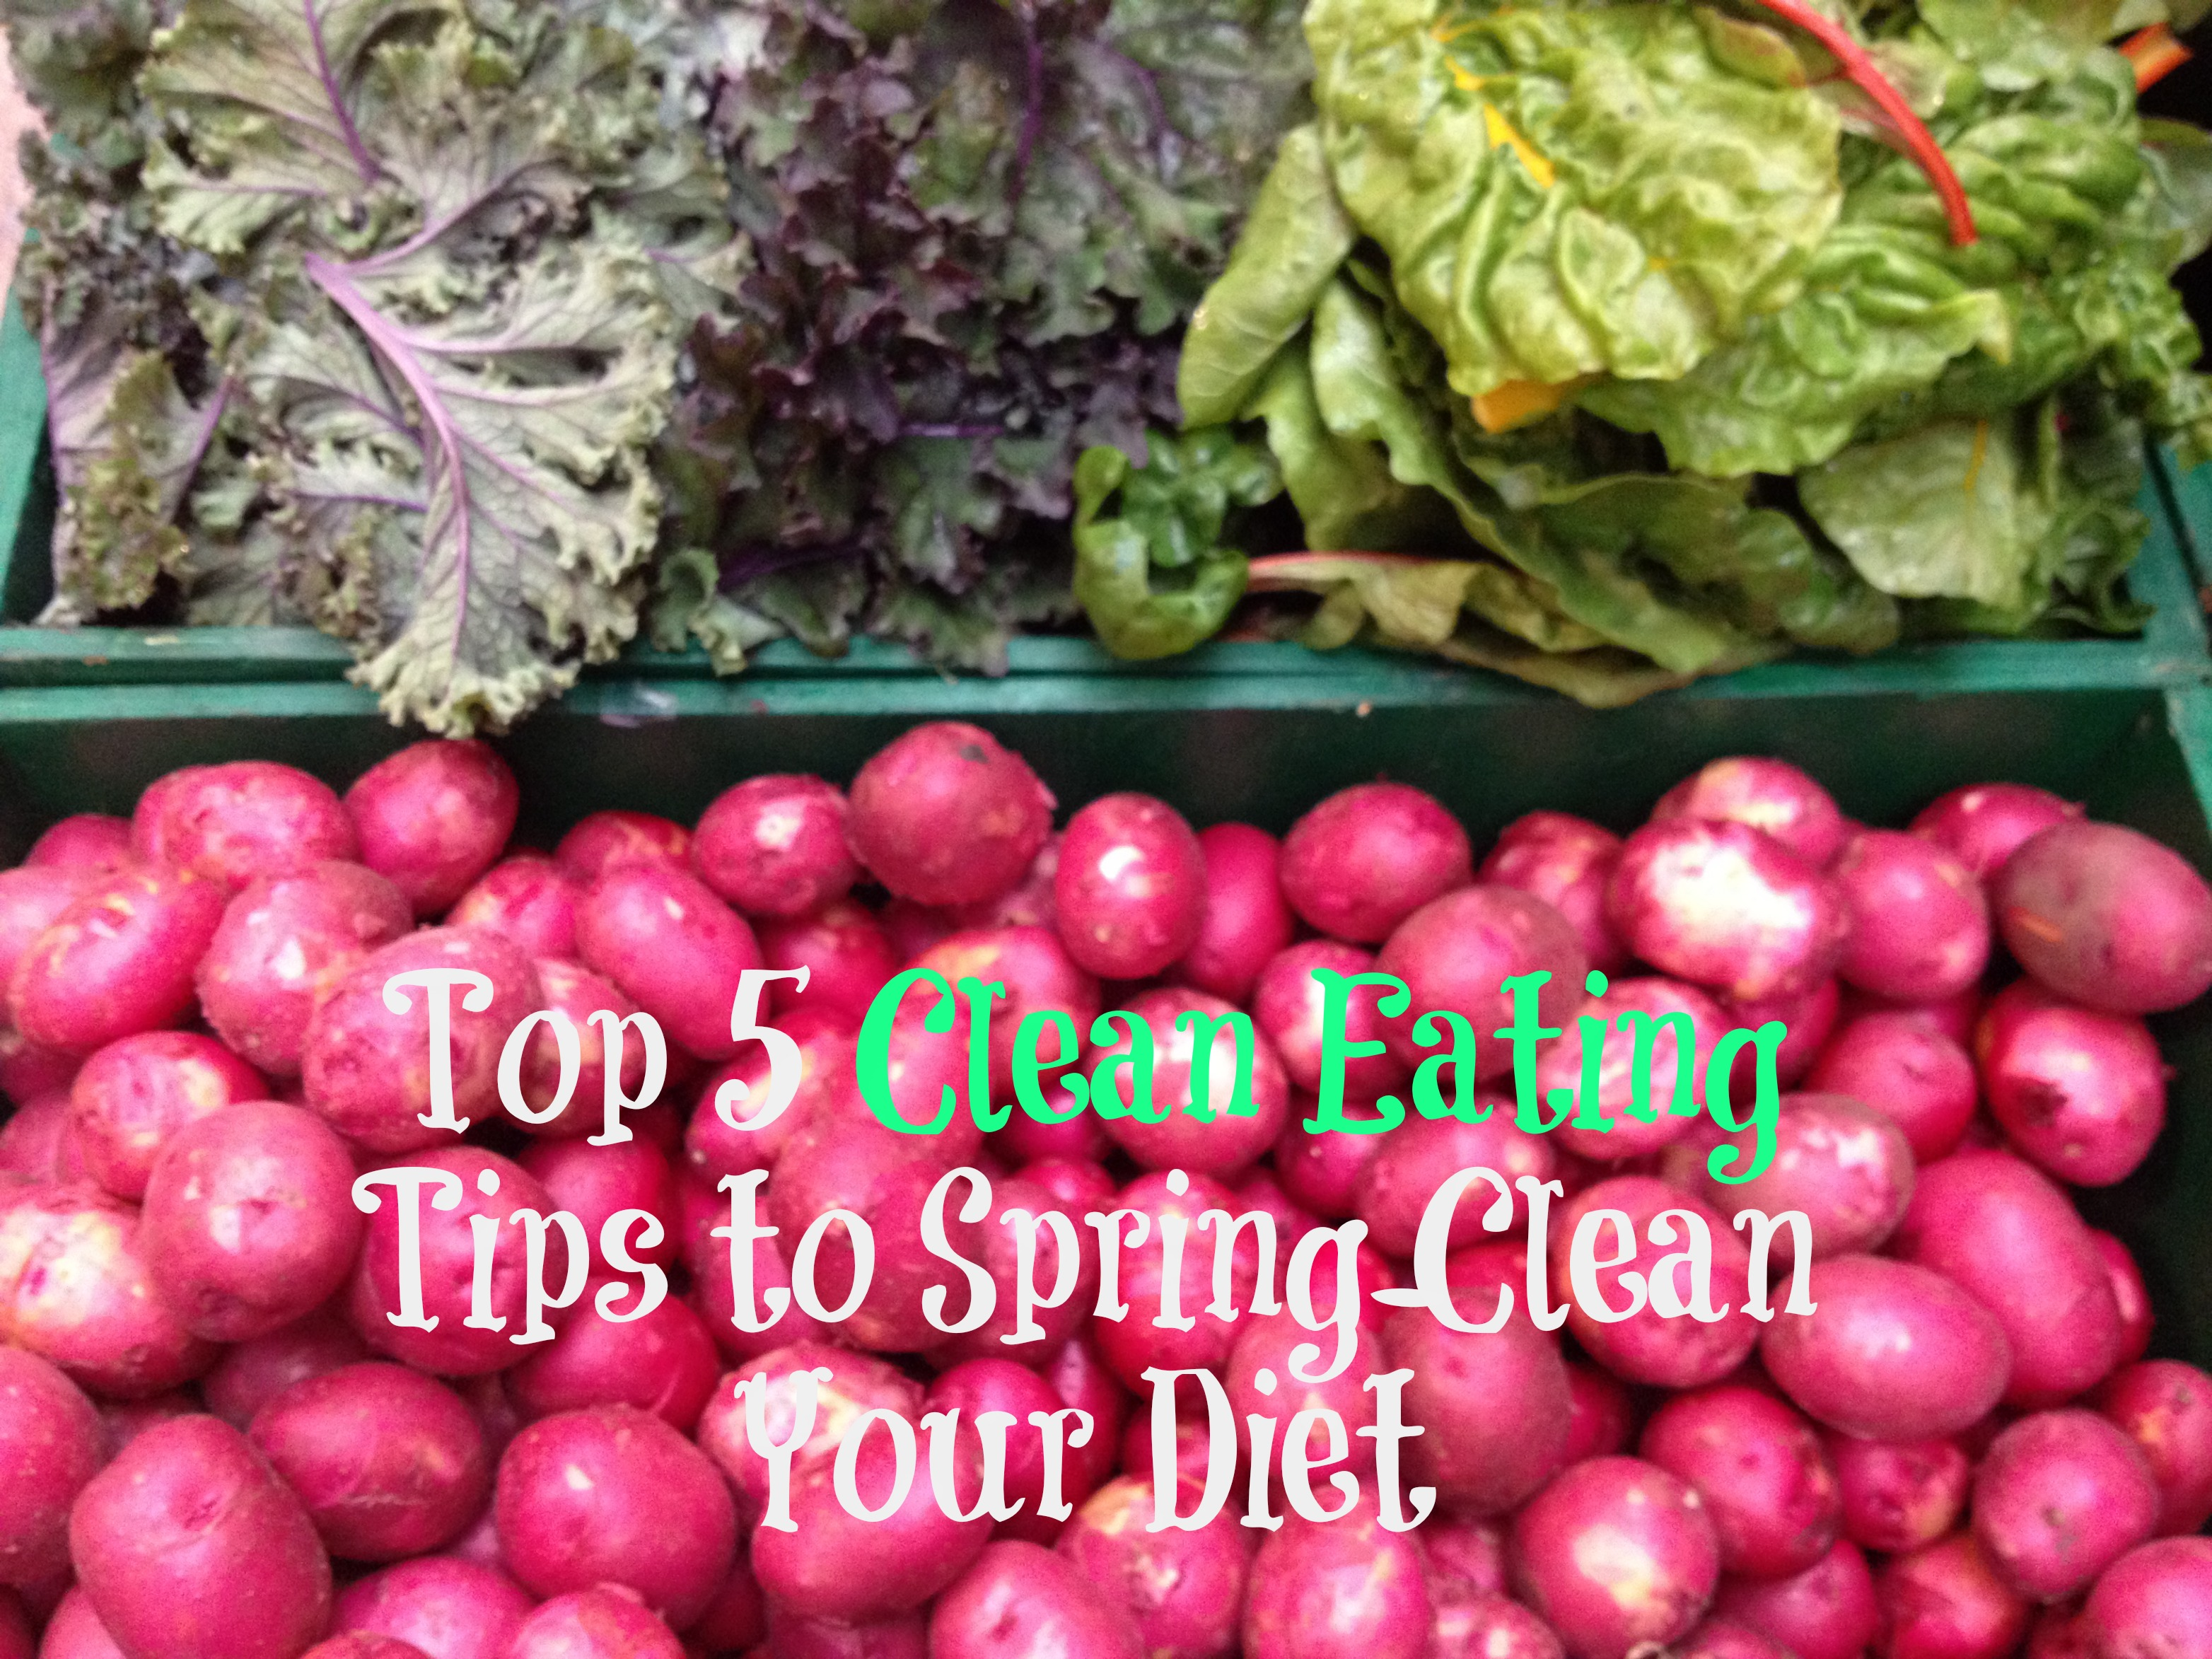 Tips for Cleaning up your diet via eMeals